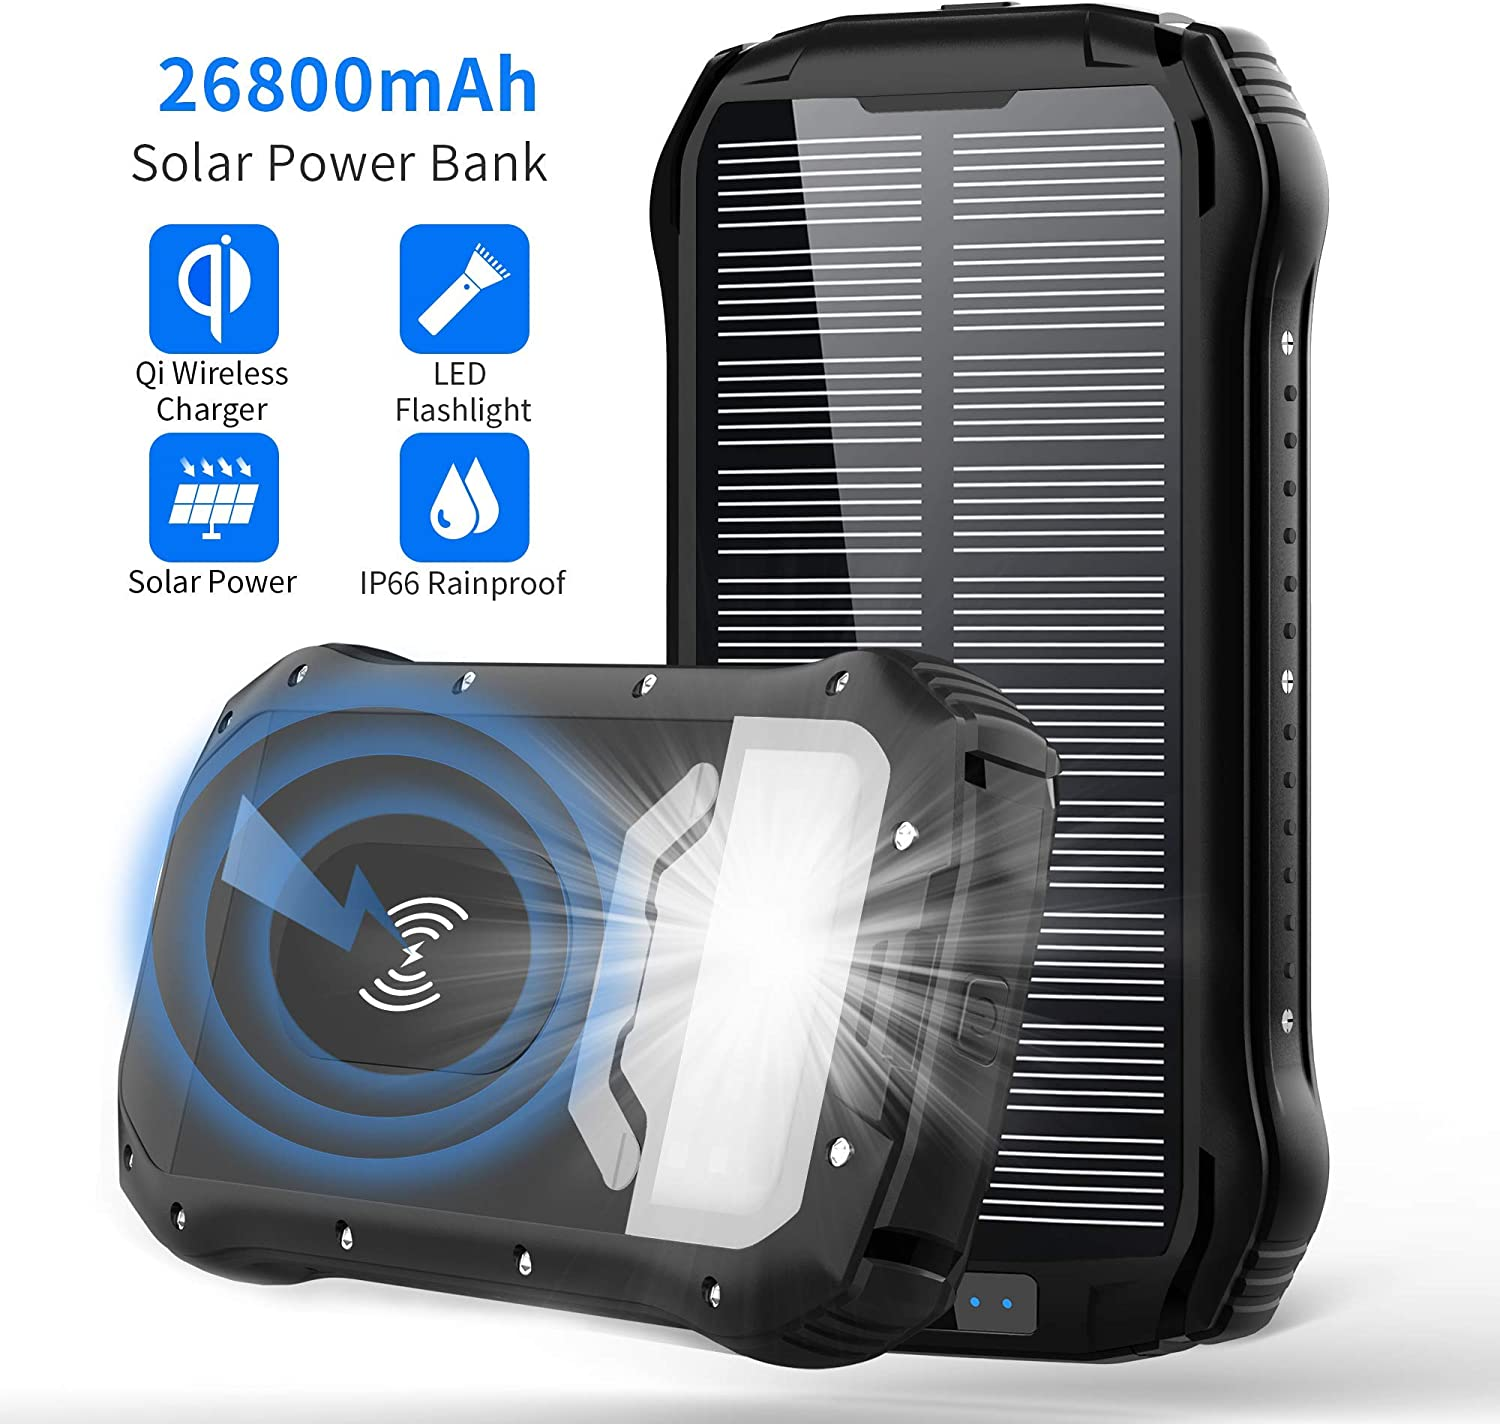 Solar Charger 26800mAh, Qi Wireless Portable Solar Power Bank with 4 Outputs Dual Inputs Type-C, Waterproof External Backup Battery Pack with 18 LED Flashlight for Smart Phone,Tablets, Outdoor